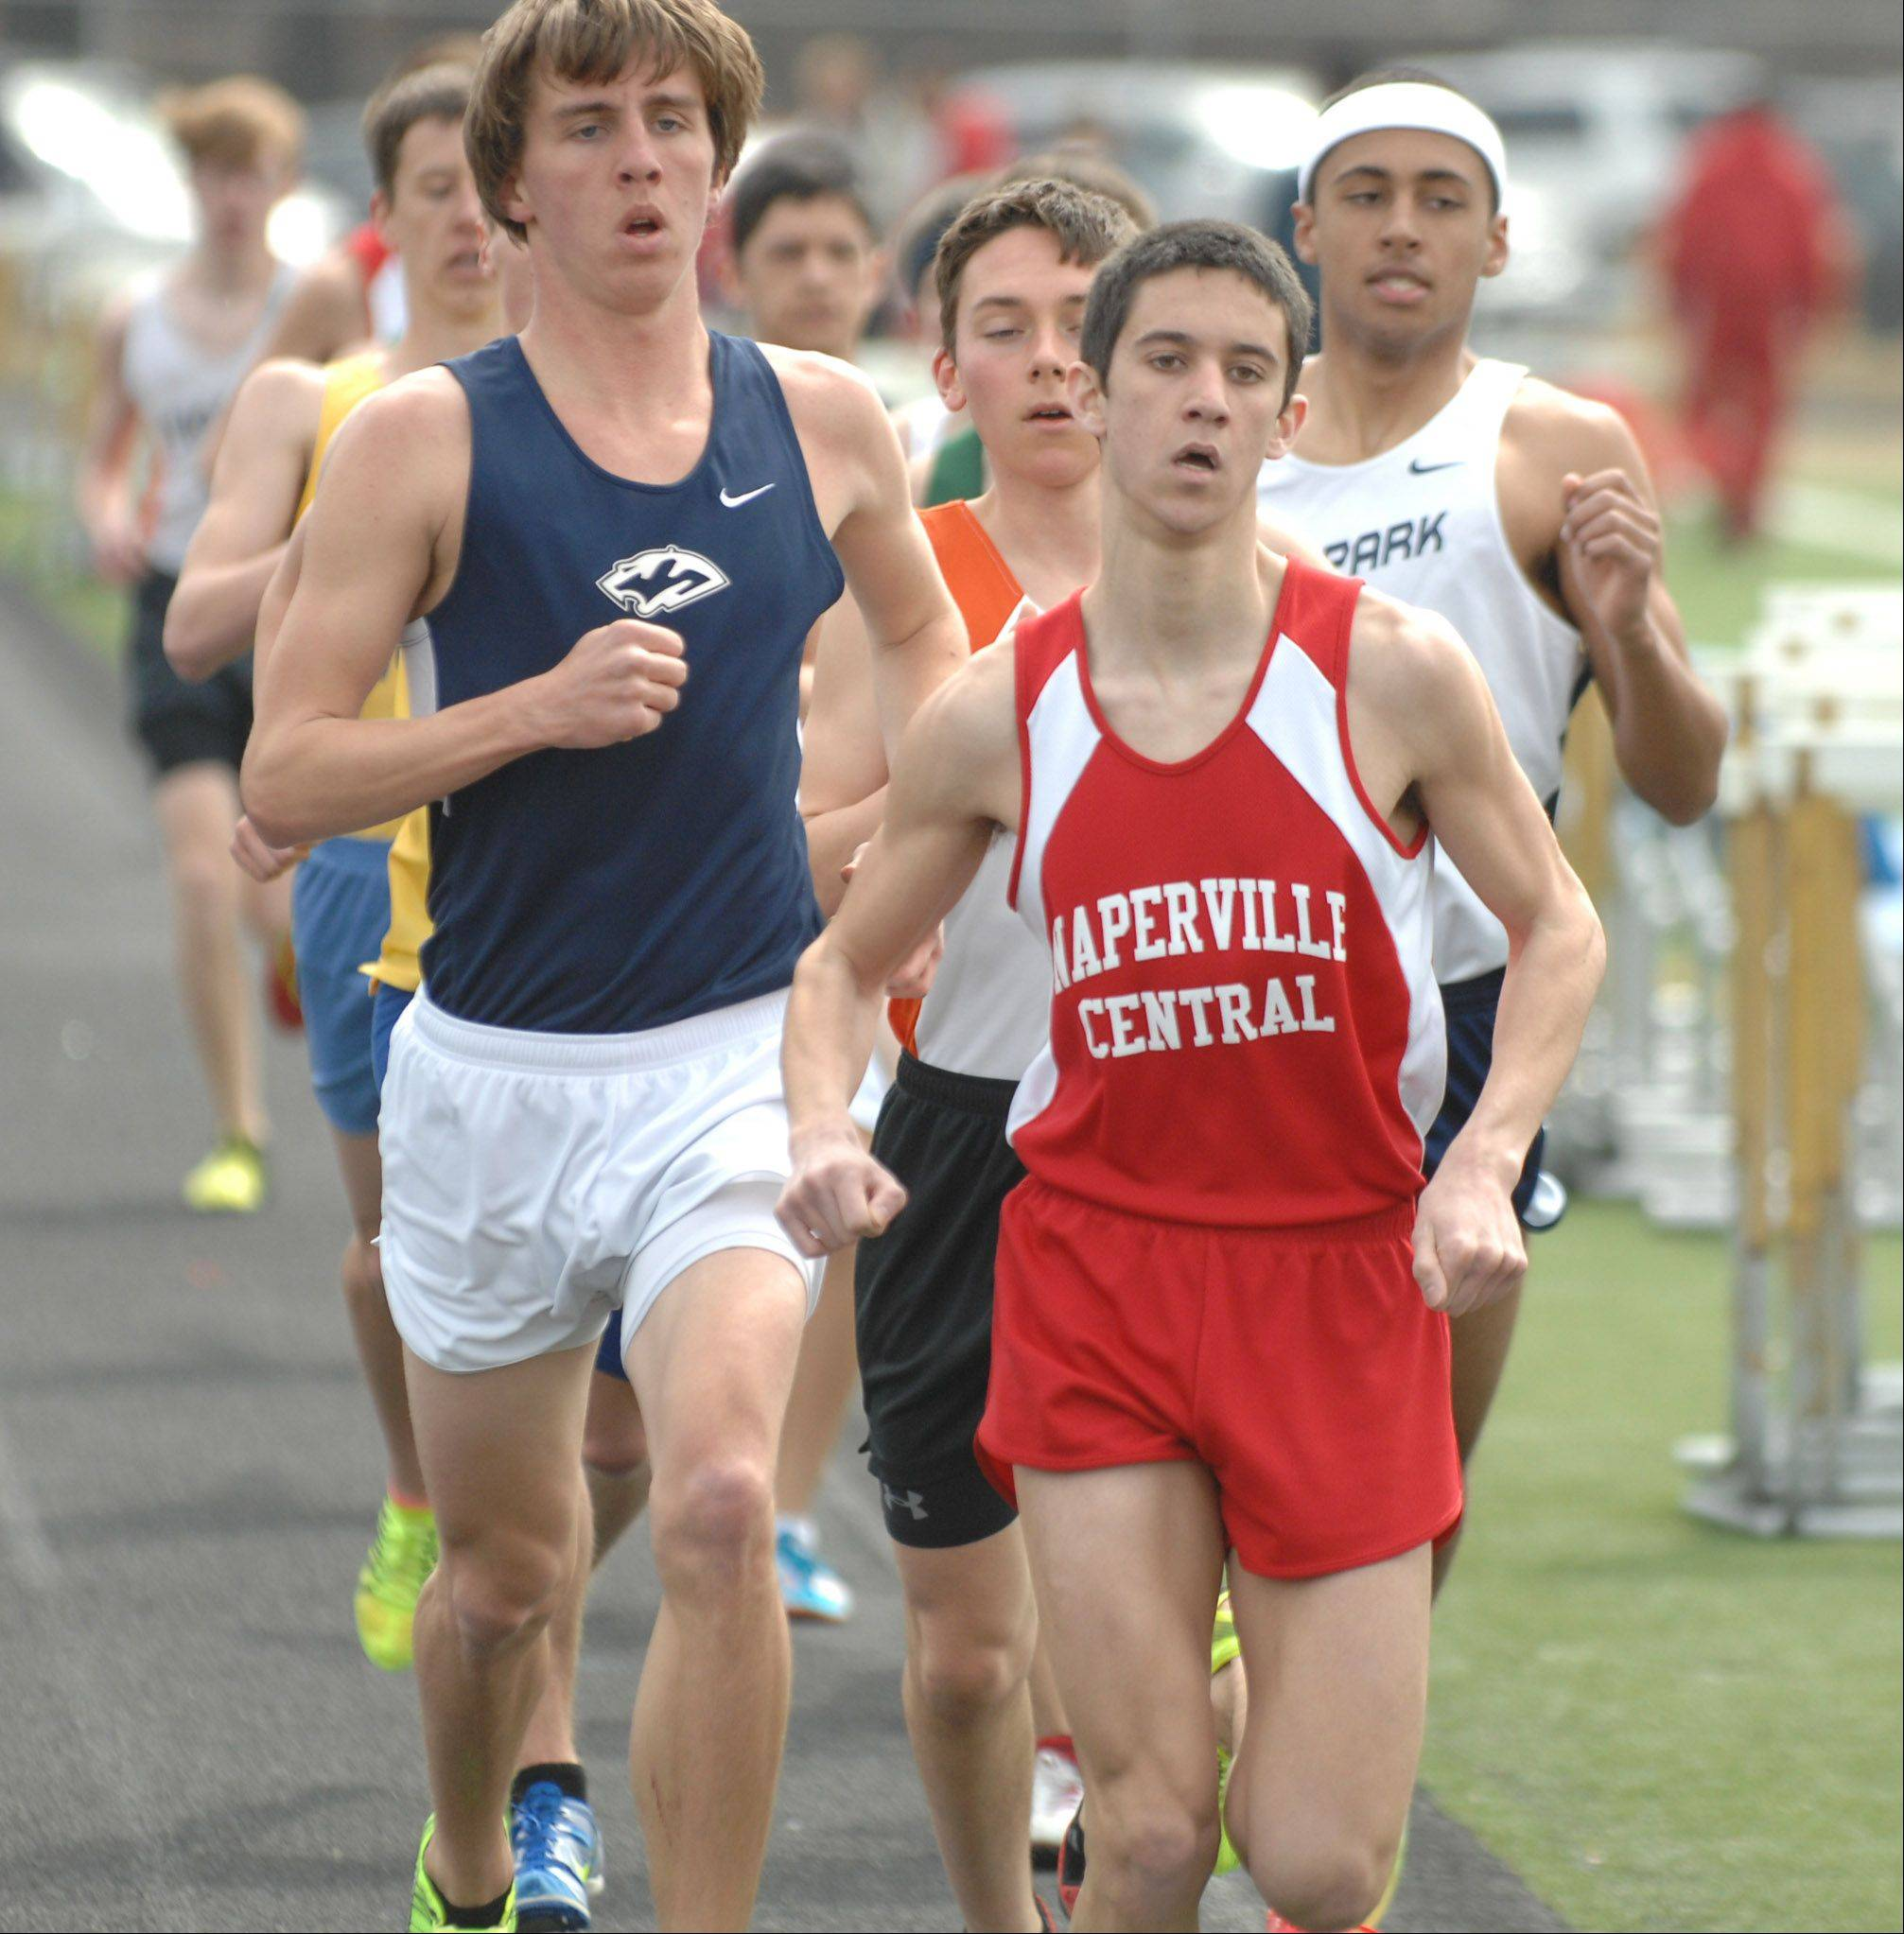 Ethan Brodeur of Naperville Central takes the lead during in the 3200 run at the Wheaton North Best 4 boys track invitational Saturday.